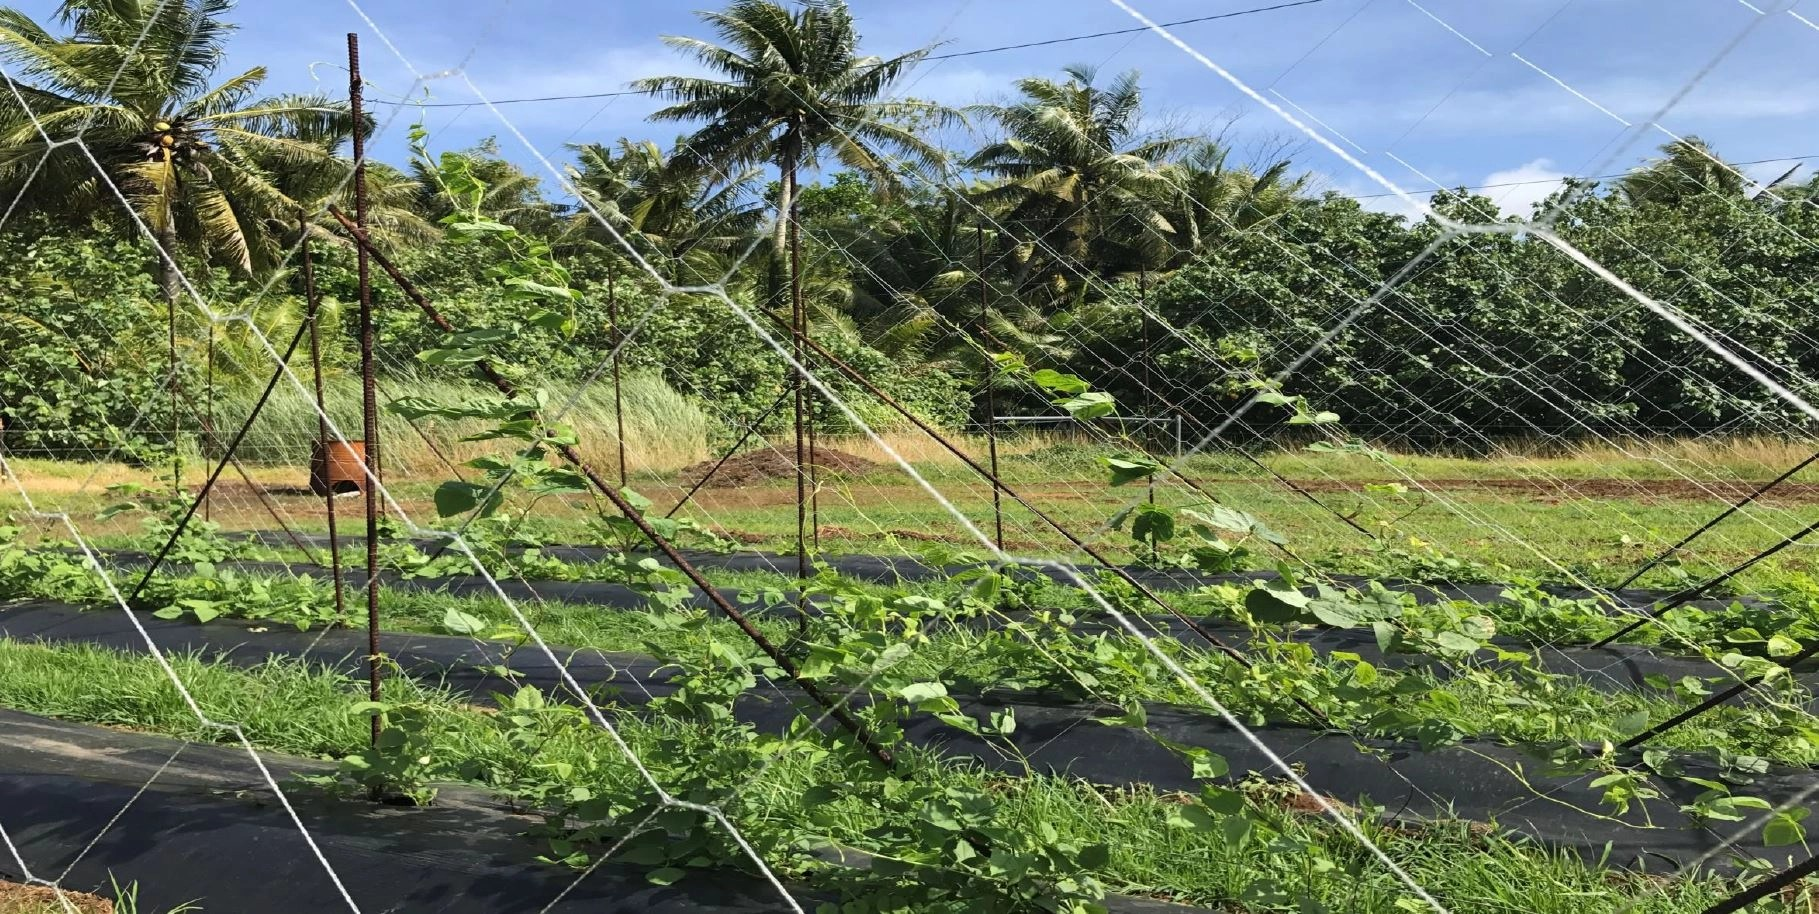 _plastic mulching winged beans and drip irrigation,plastic mulching watermelon, Valley of the Latte, Guam Tours, Best tours on guam, things to do on guam, カヤック , 旅行 , ファインダー越しの私の世界 , 写真好きな人と繋がりたい , インスタ映え , スタンドアップパドル , 冒険 , 観光 , リゾート , 夏 , 夏休み , 休暇 , 文化 , 家族旅行 , アー , ビーチ , パラダイス , グアム , 島 , 天気 , グアム旅行 , 海外 , 海外旅